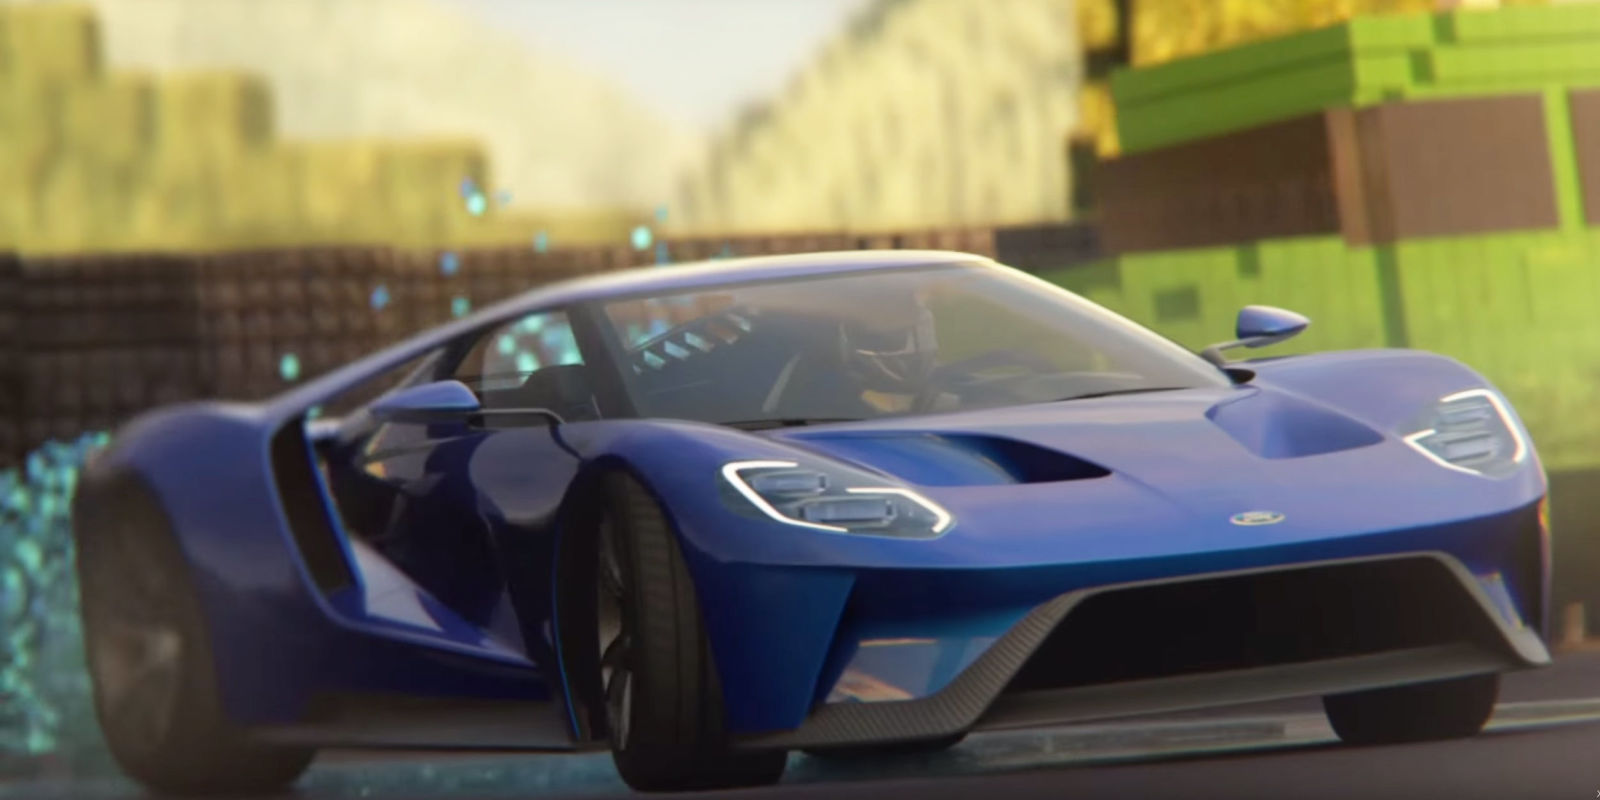 New Forza 6 Commercial Pays Homage to Past Racing Games